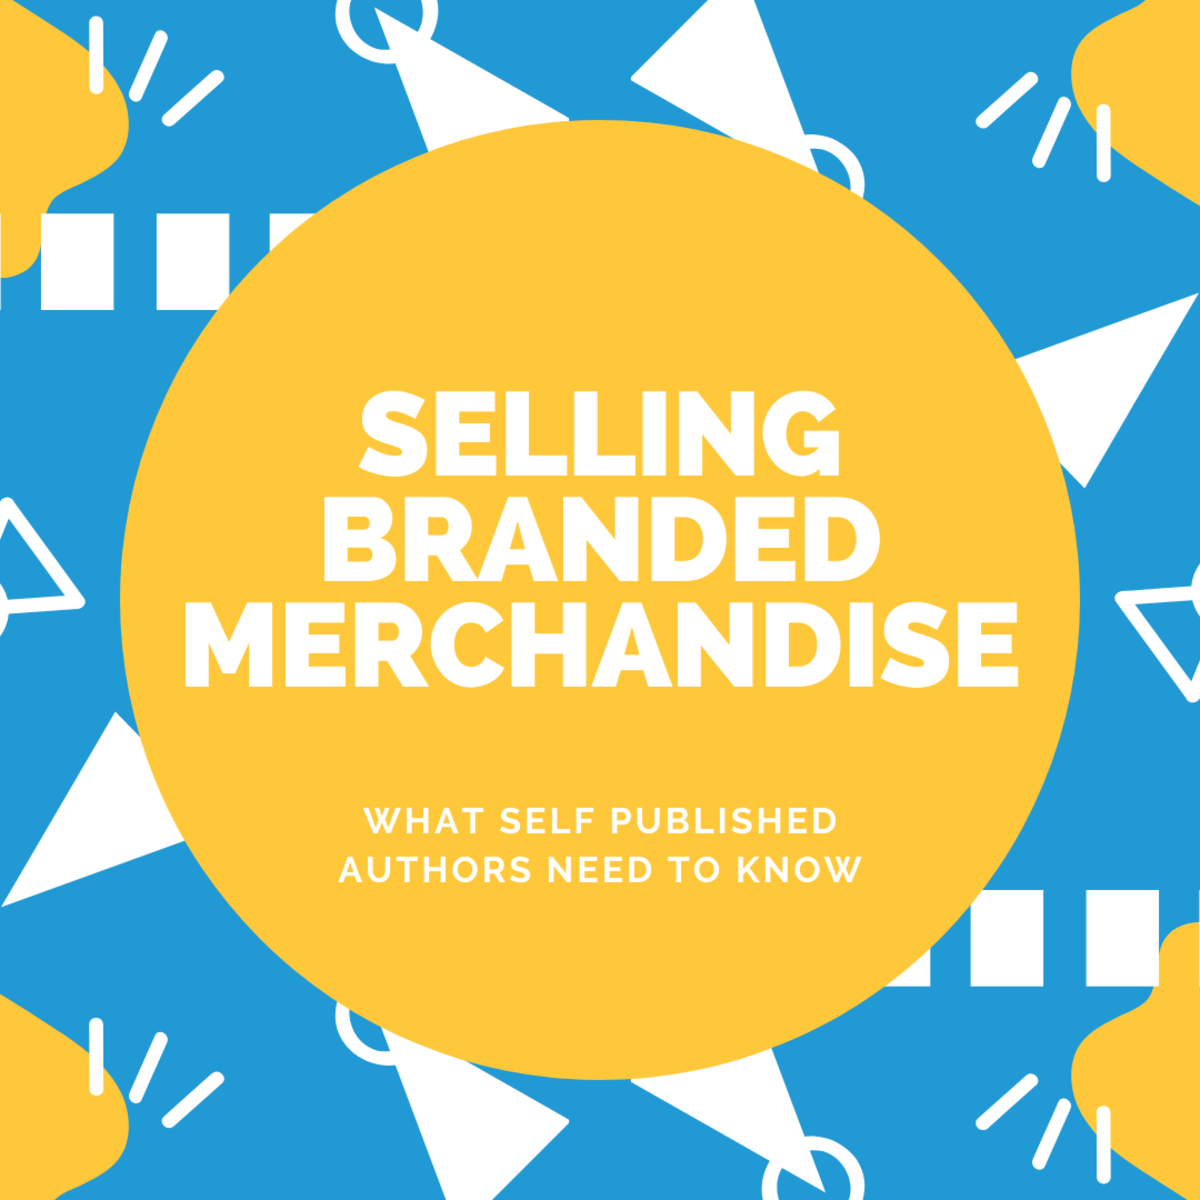 Selling Branded Merchandise: What Self Published Authors Need to Know